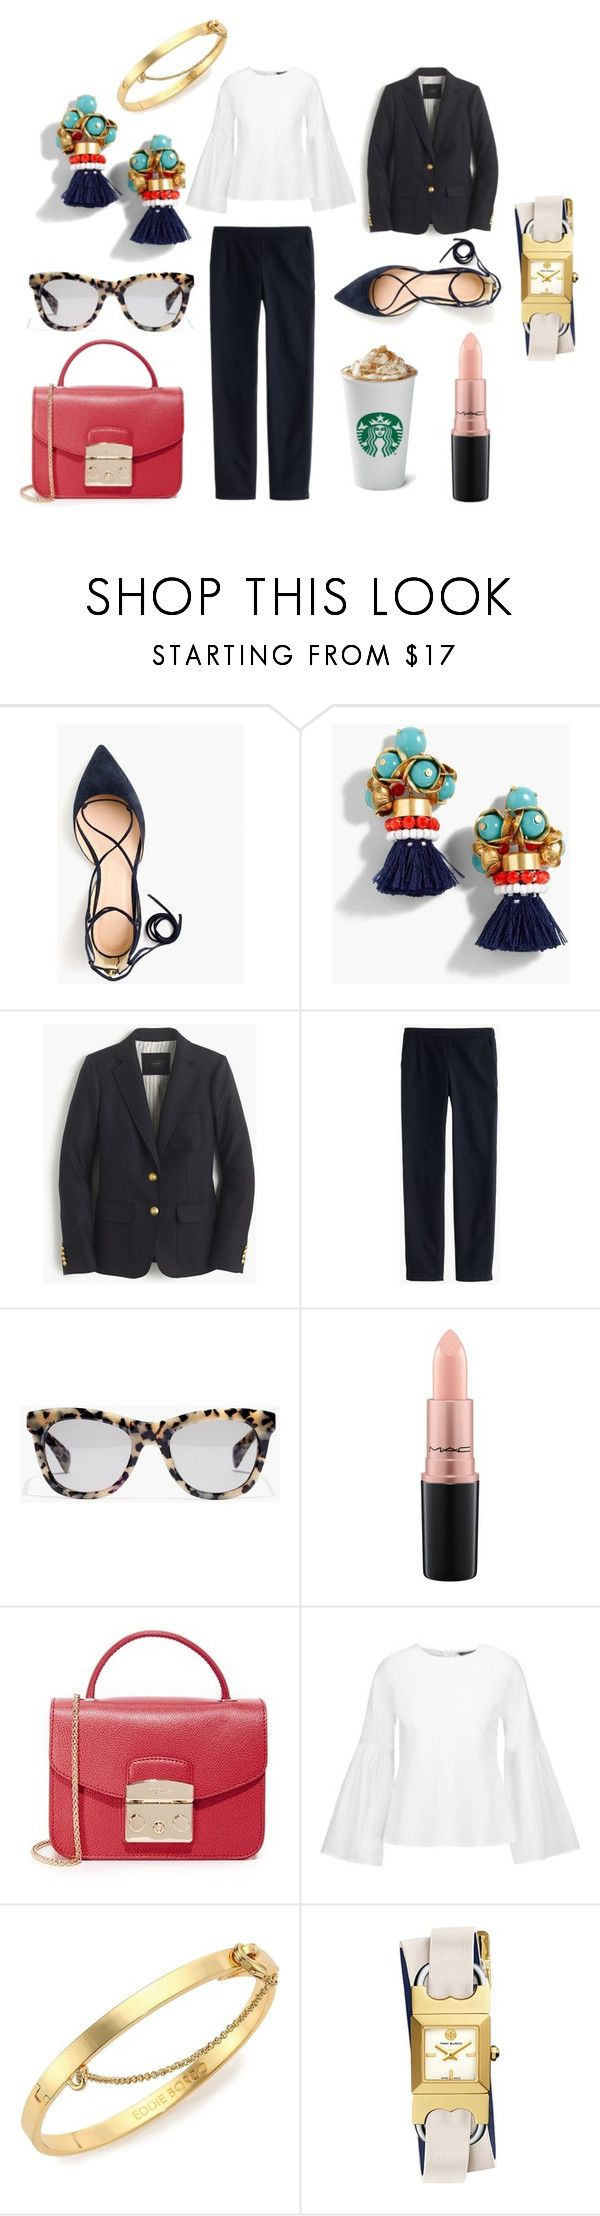 """""""What to Wear To Work Tomorrow"""" by stylists-1 on Polyvore featuring J.Crew, MAC Cosmetics, Furla, W118 by Walter Baker, Eddie Borgo and Tory Burch"""